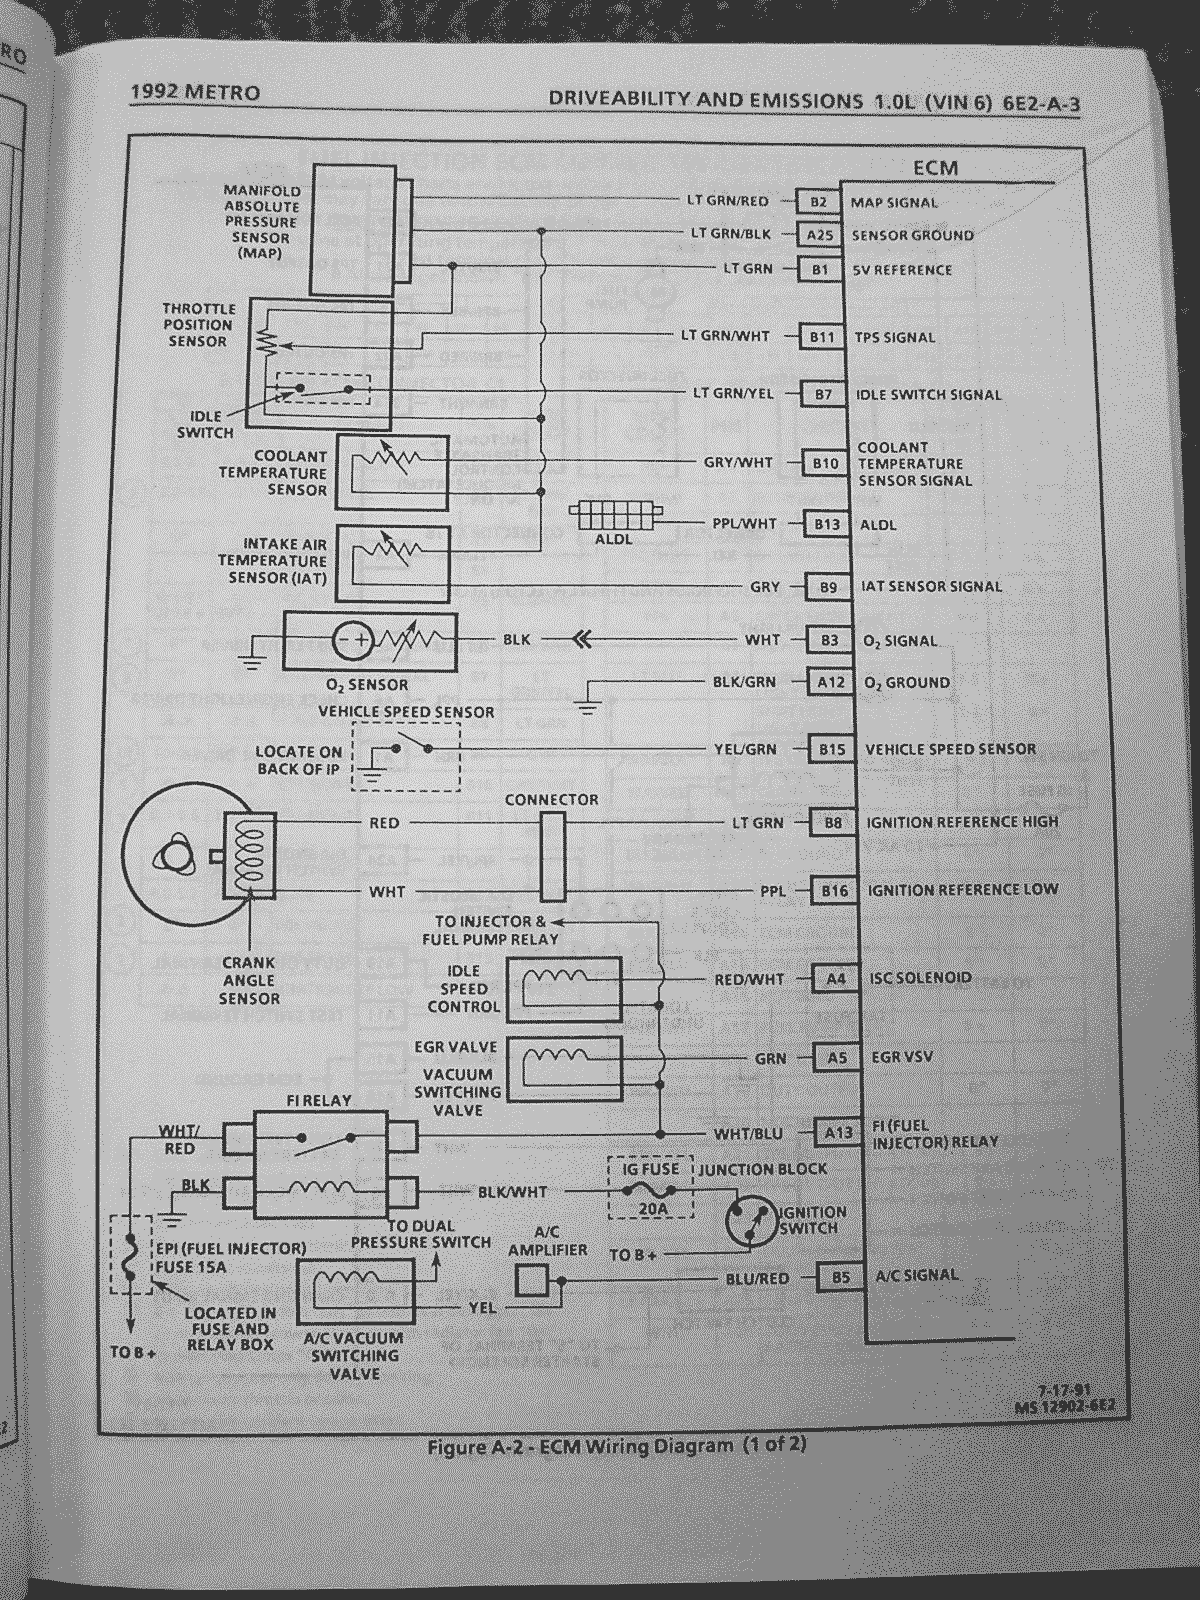 6e2 a 3 geo metro and suzuki swift wiring diagrams metroxfi com 1994 geo metro fuse box diagram at readyjetset.co